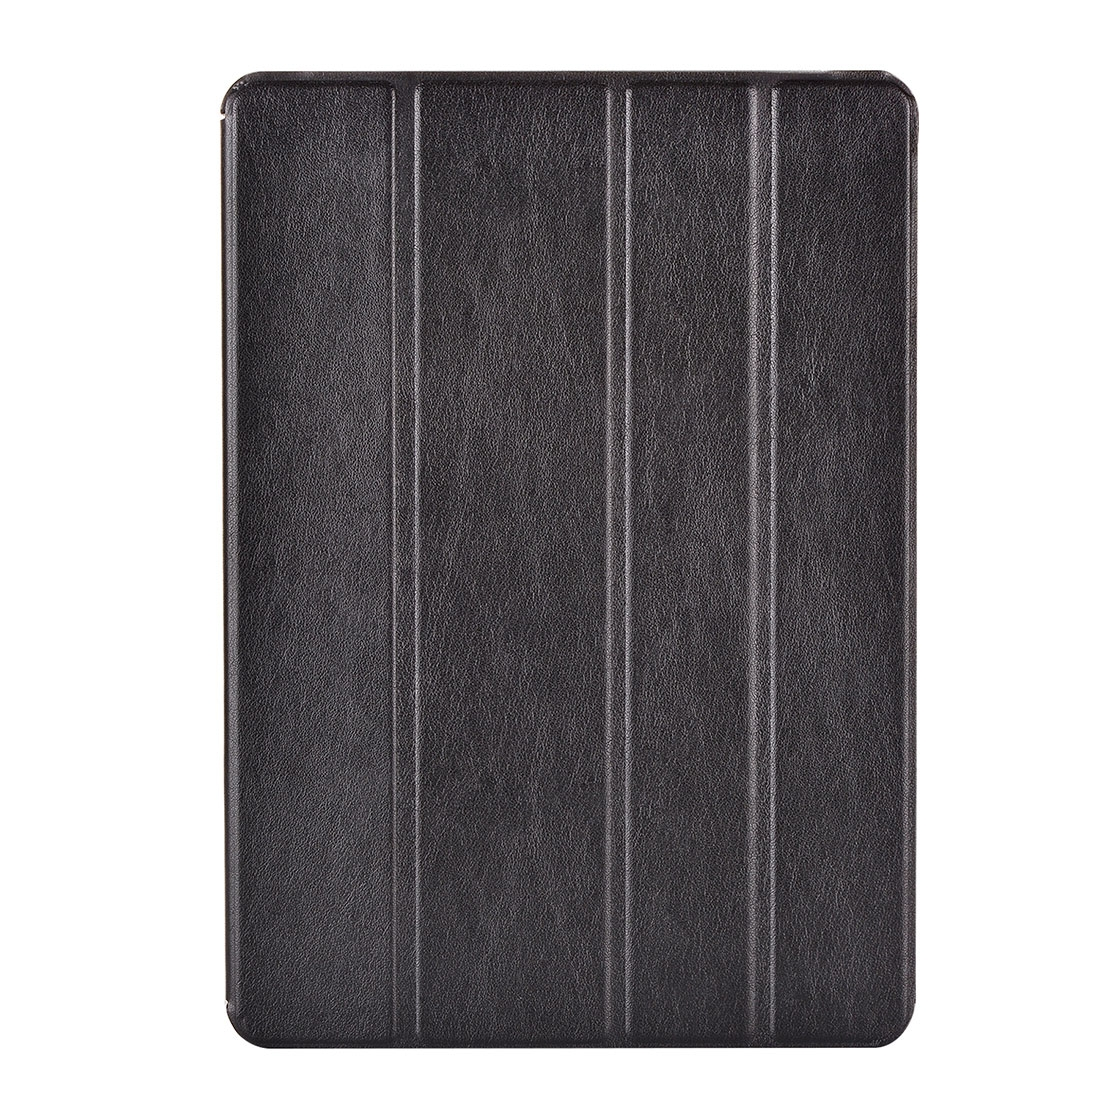 iPad Air Cover Features A Stylish Protective Genuine Leather Casing And A Quad Fold Stand (Black)